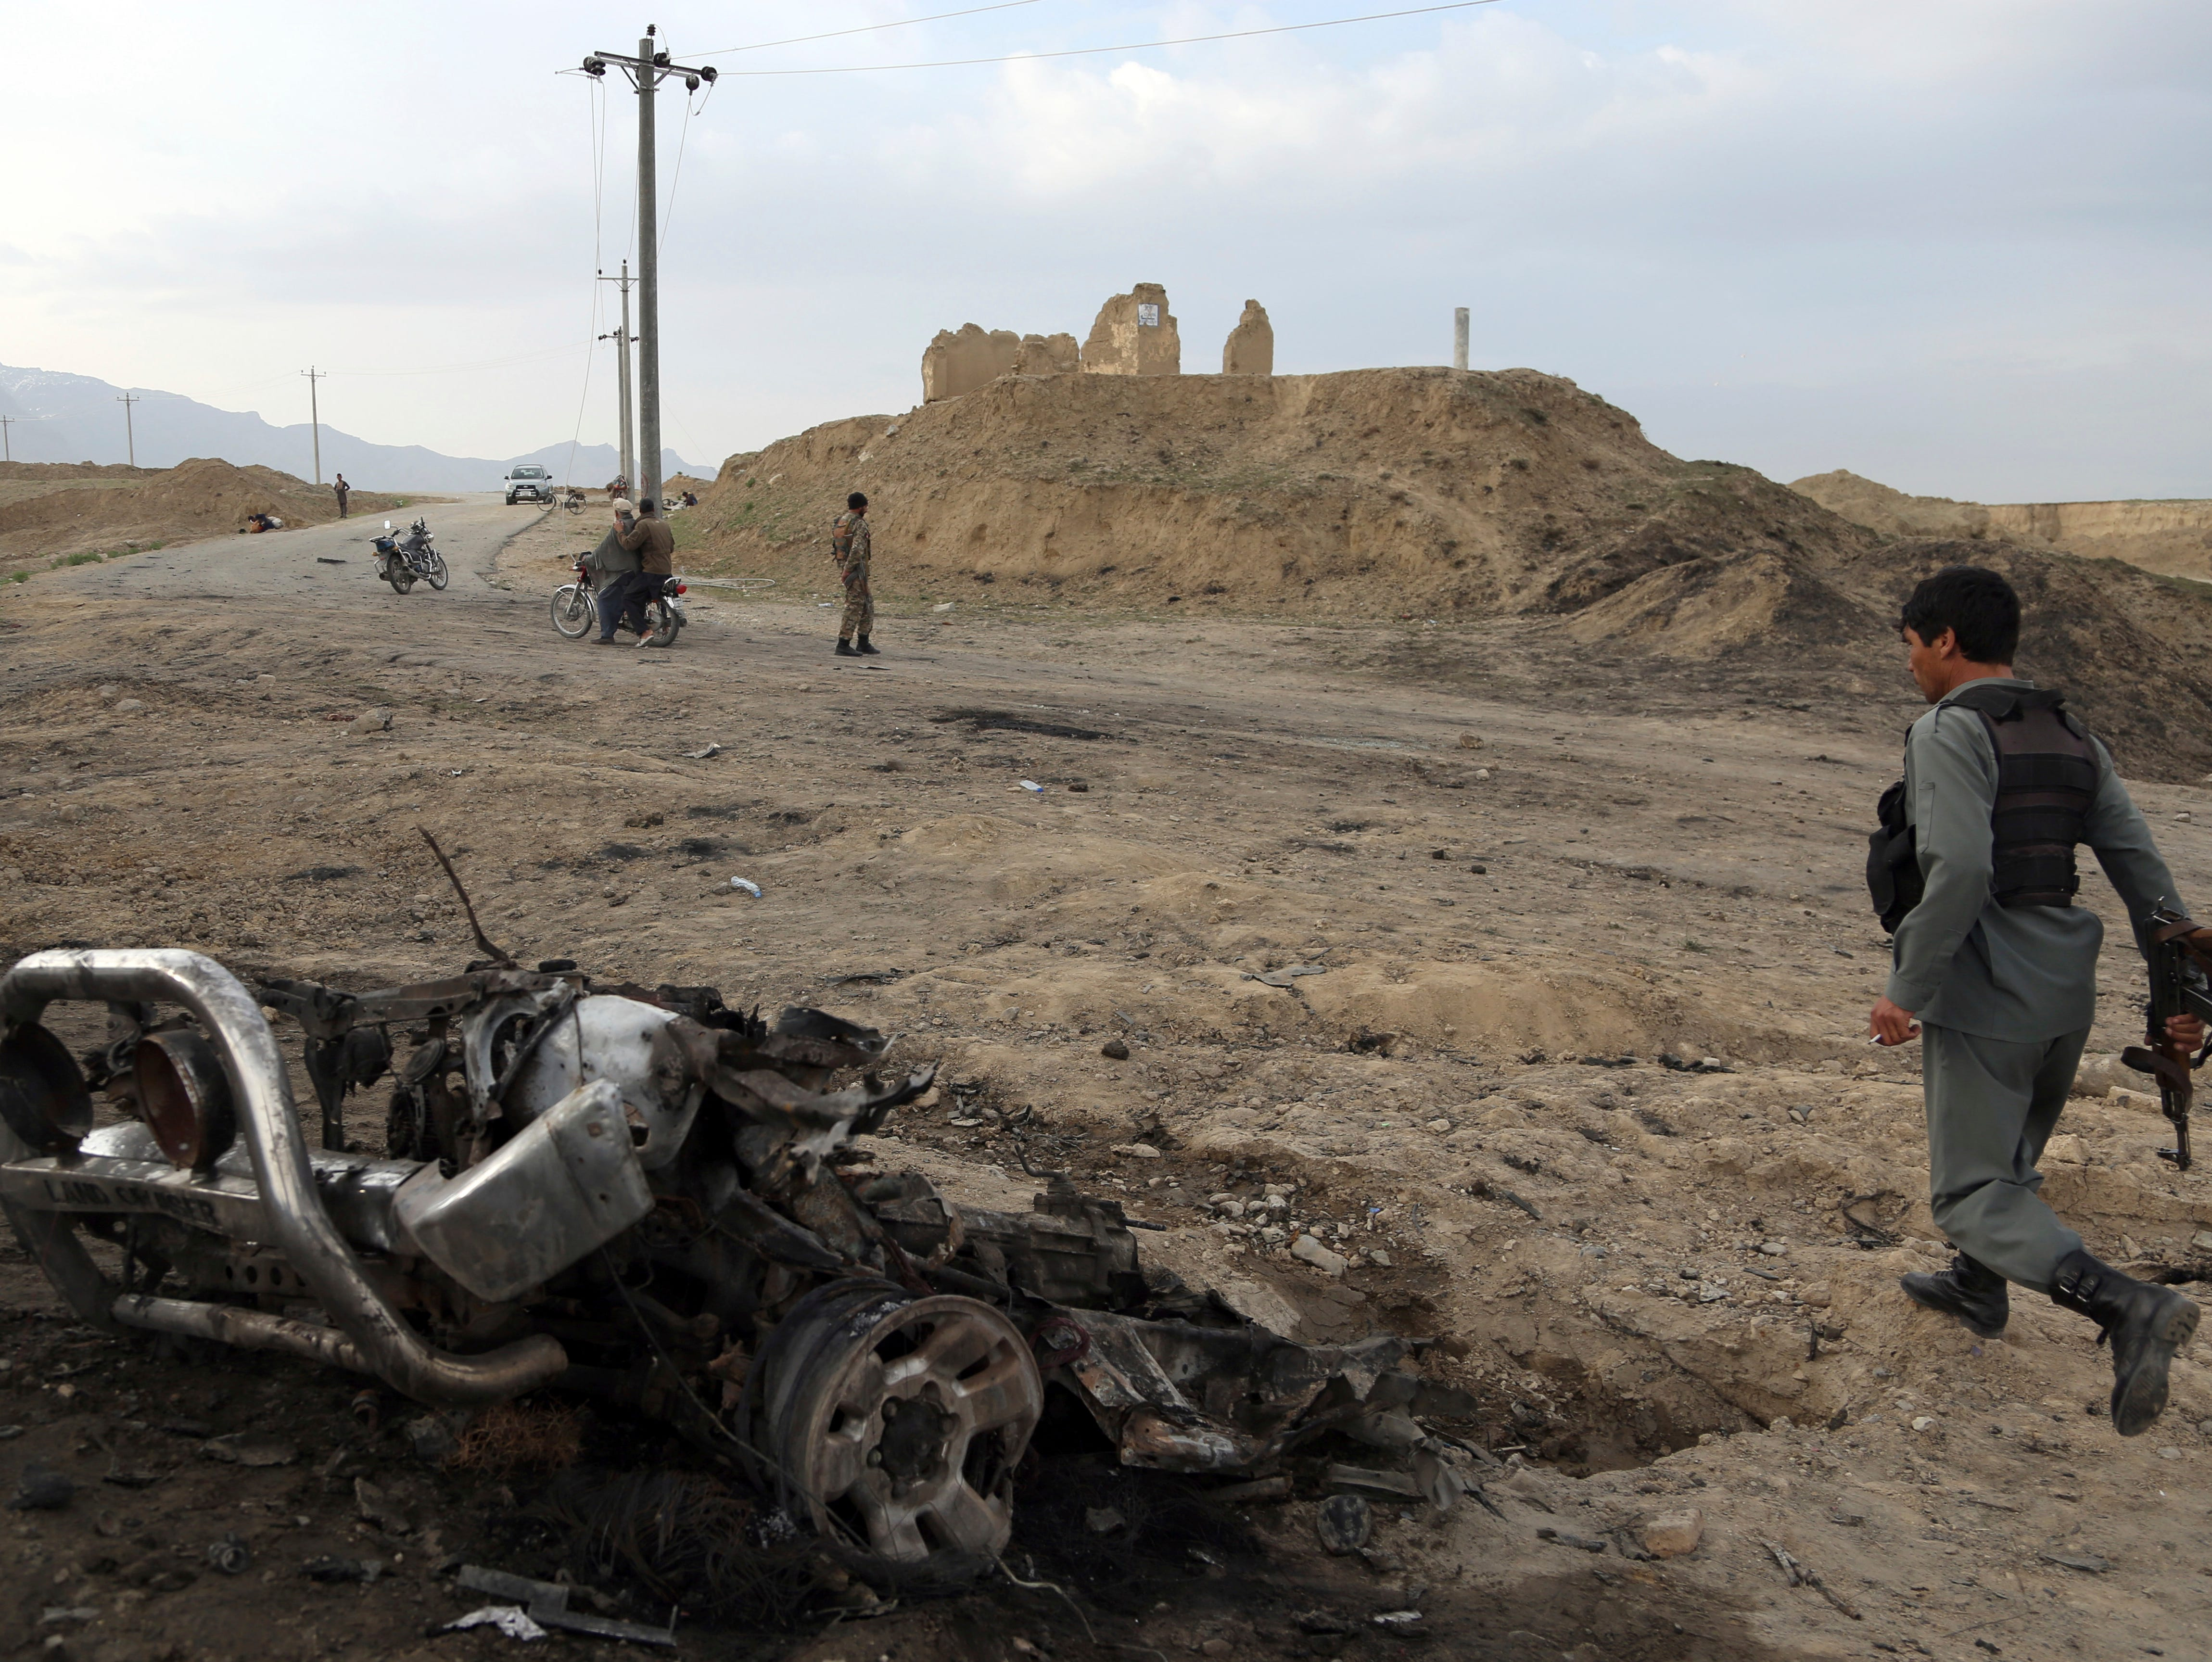 Afghan security forces gather at the site of Monday's attack near the Bagram Air Base, north of Kabul, Afghanistan, Tuesday, April 9, 2019. Three American service members killed when their convoy hit a roadside bomb on Monday near the main U.S. base in Afghanistan, the U.S. forces said. The Taliban claimed responsibility for the attack.